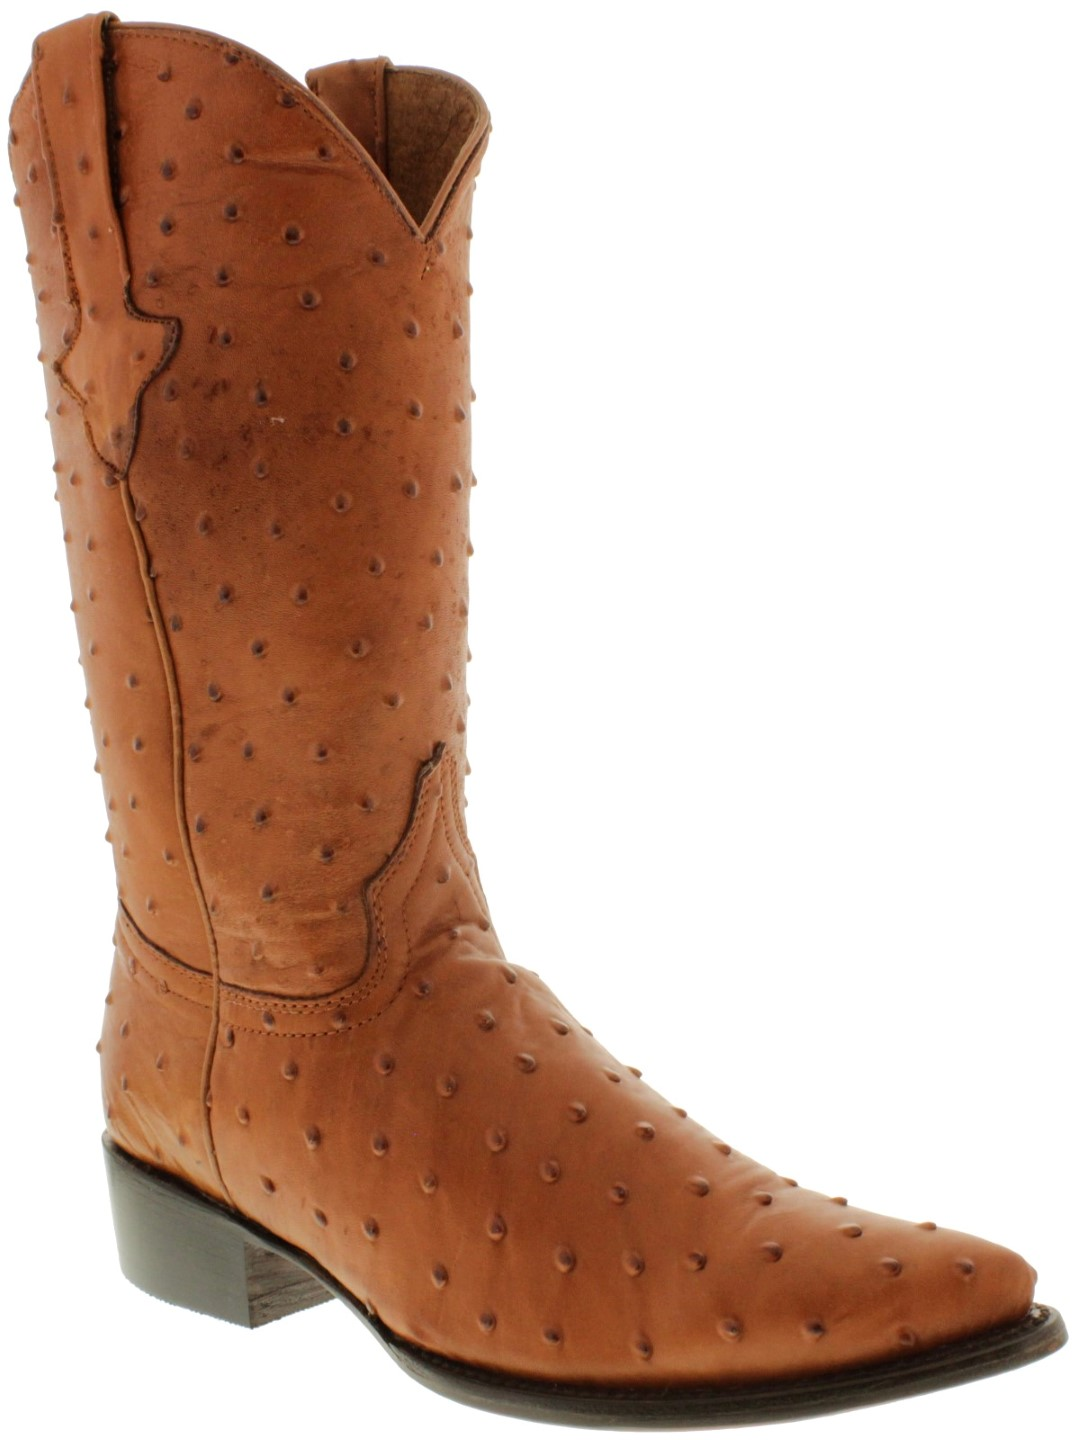 429bef541f5 Mens Brown Full Ostrich Print Leather Western Wear Cowboy Rodeo ...